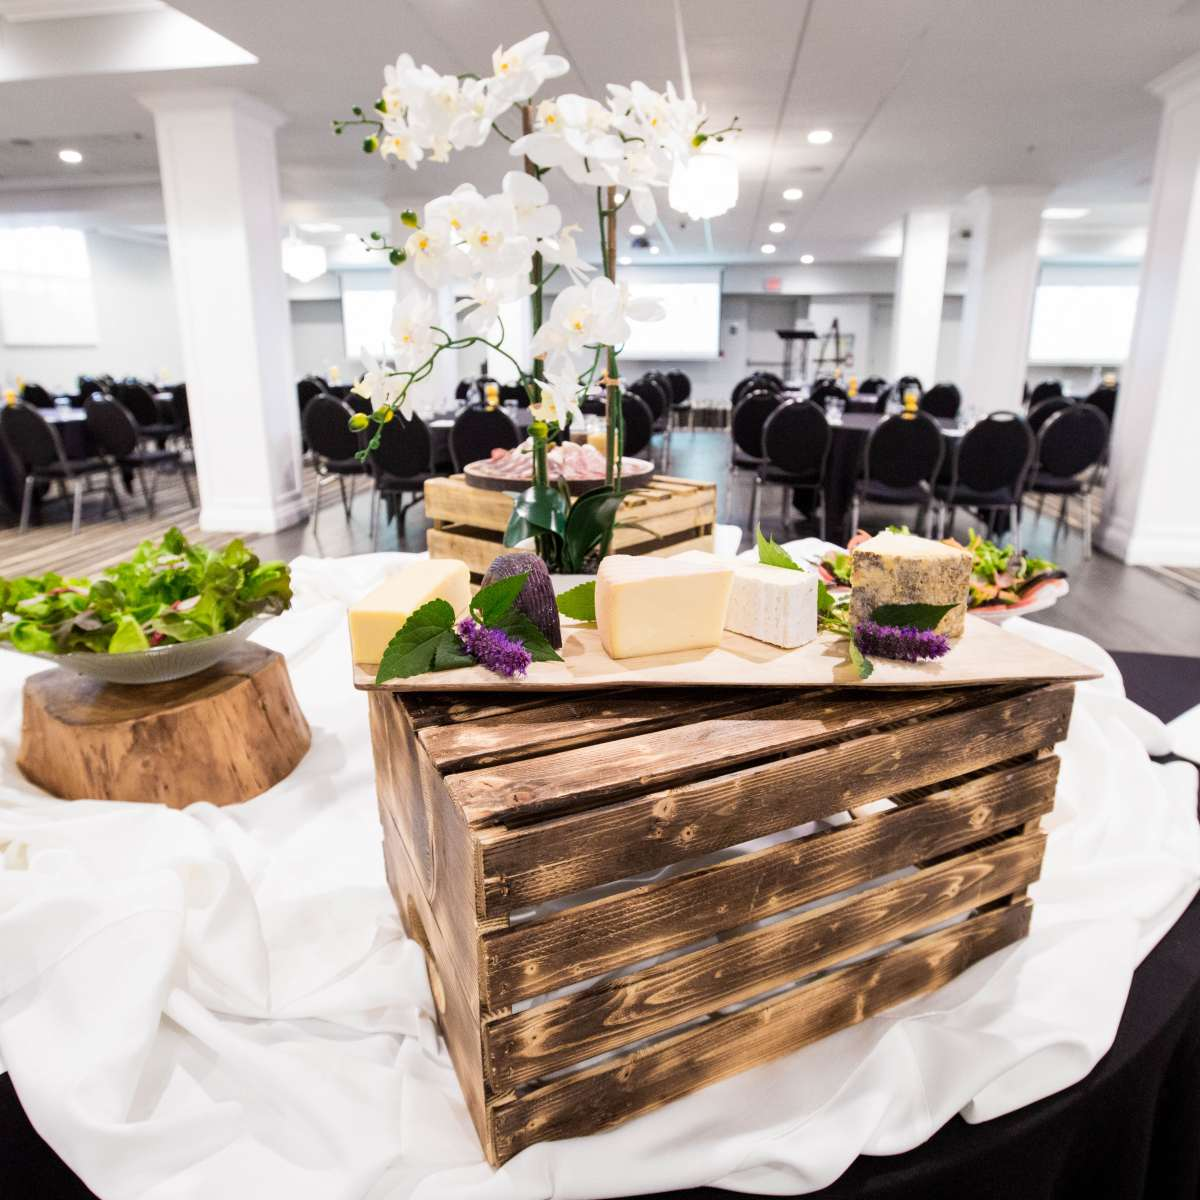 Sussex Ballroom - Buffet with Cheese Board & Salad